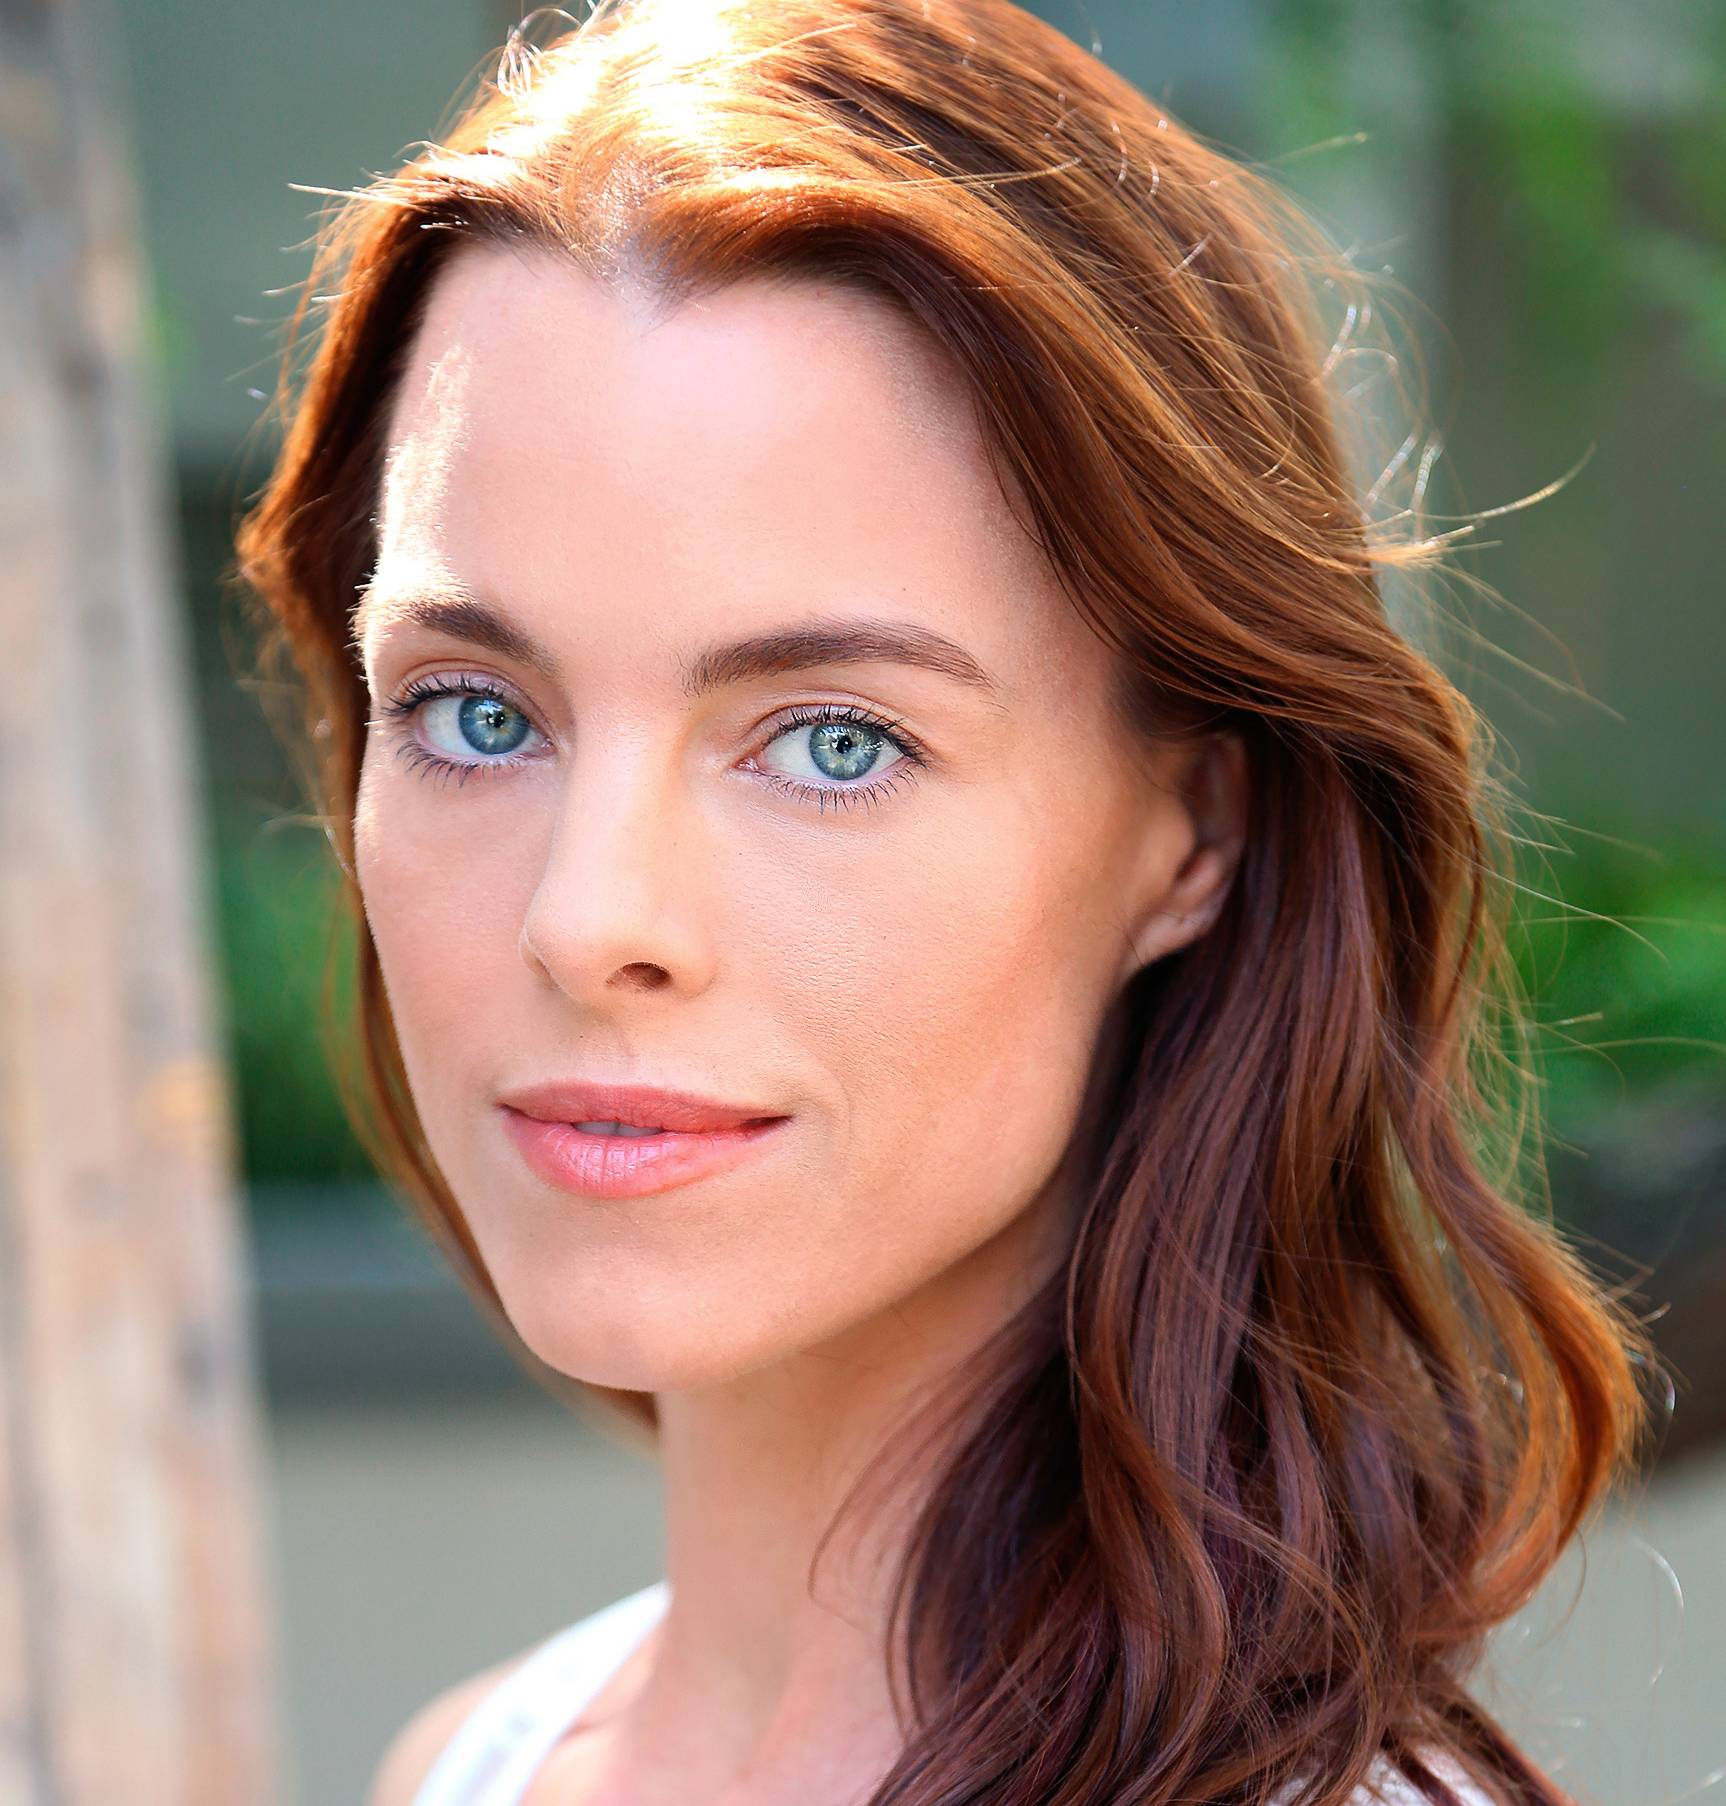 Audiobook of New America 2034 Novel Features Actress Johanna Watts as the Voice of Utopia